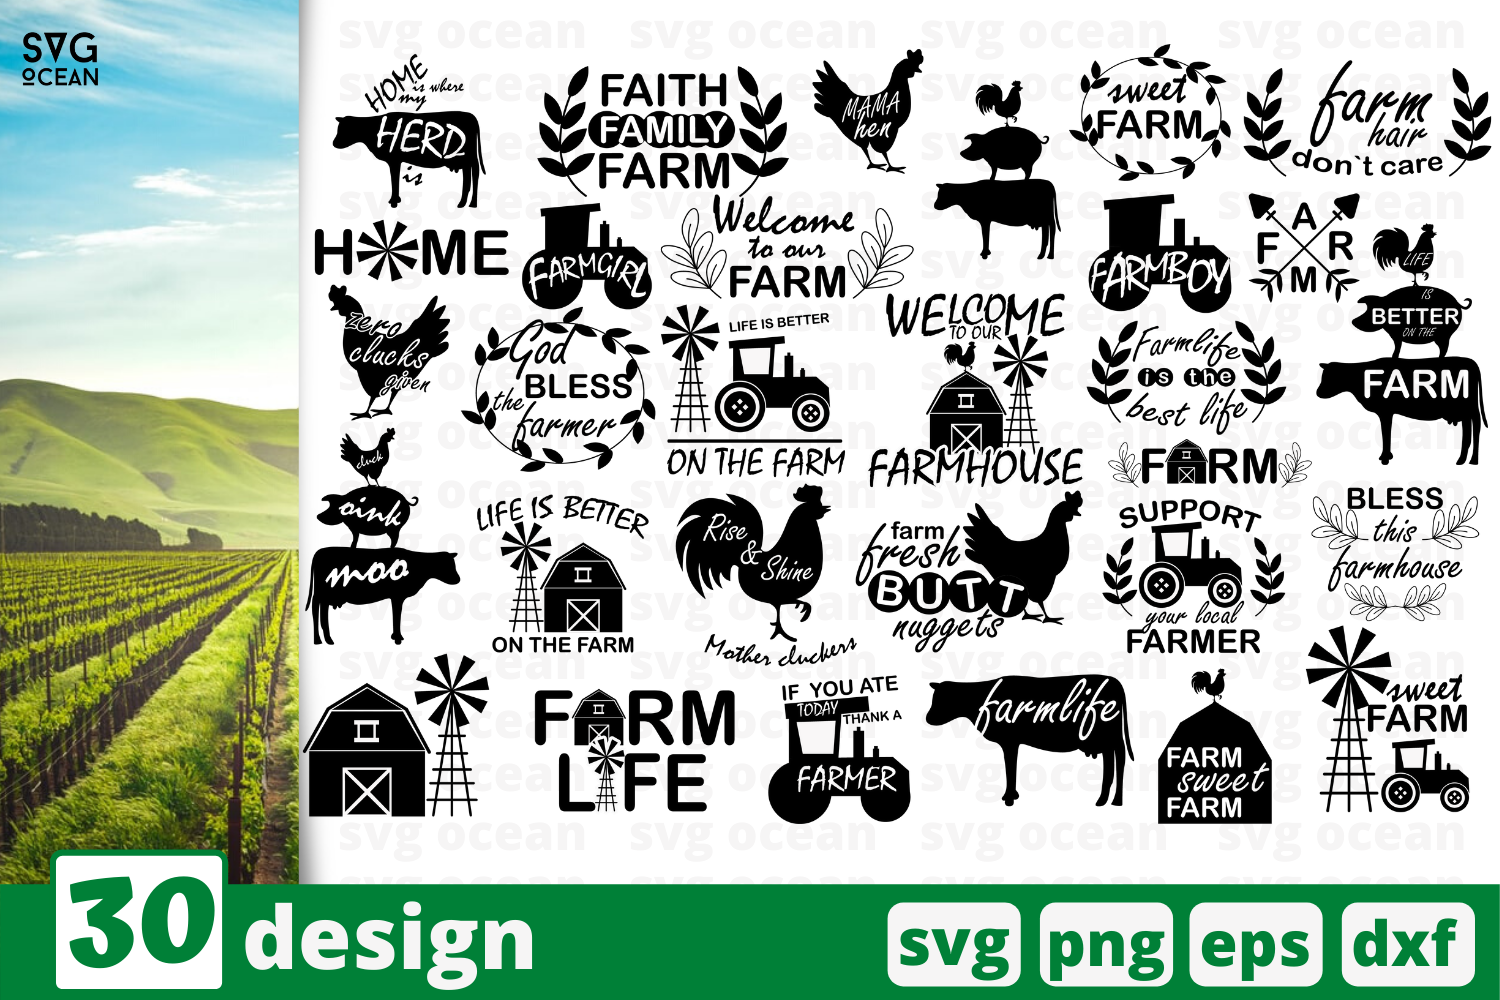 30 Farm Quotes Svg Bundle Quotes Cricut Svg By Svgocean